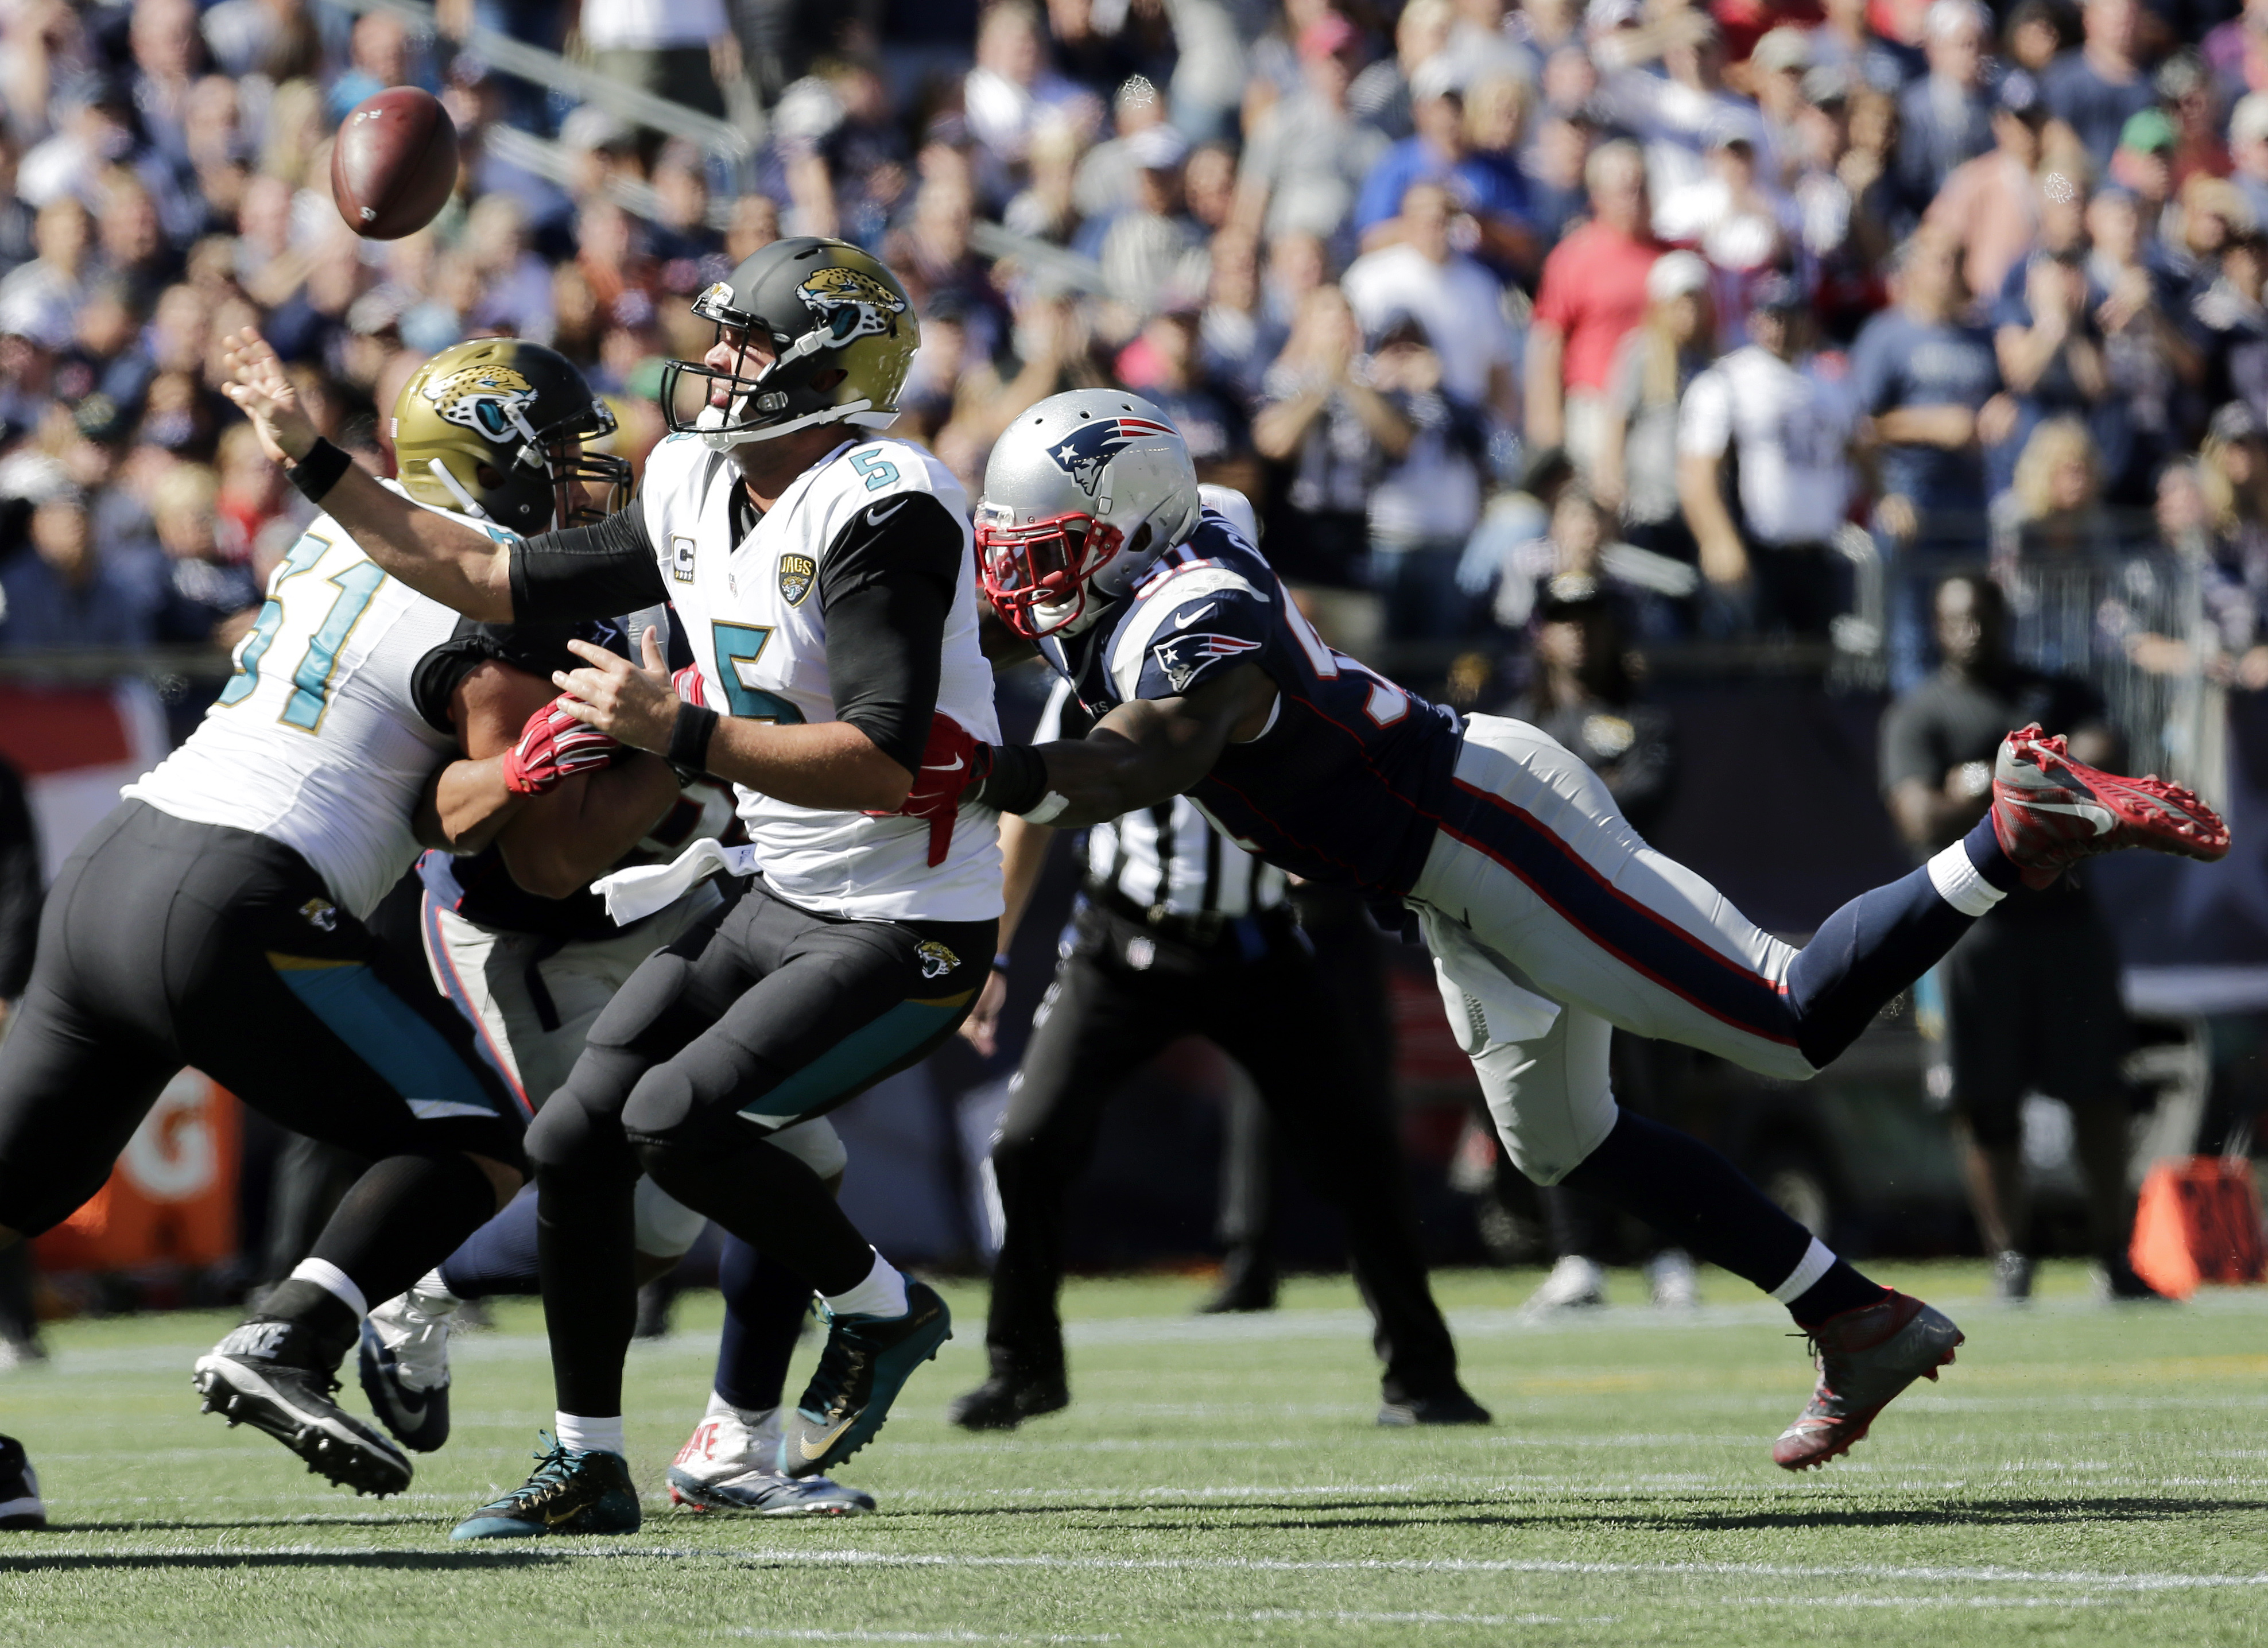 Jacksonville Jaguars quarterback Blake Bortles tries to pass while under pressure from New England Patriots linebacker Jamie Collins (91) in the first half of an NFL football game, Sunday, Sept. 27, 2015, in Foxborough, Mass. (AP Photo/Charles Krupa)